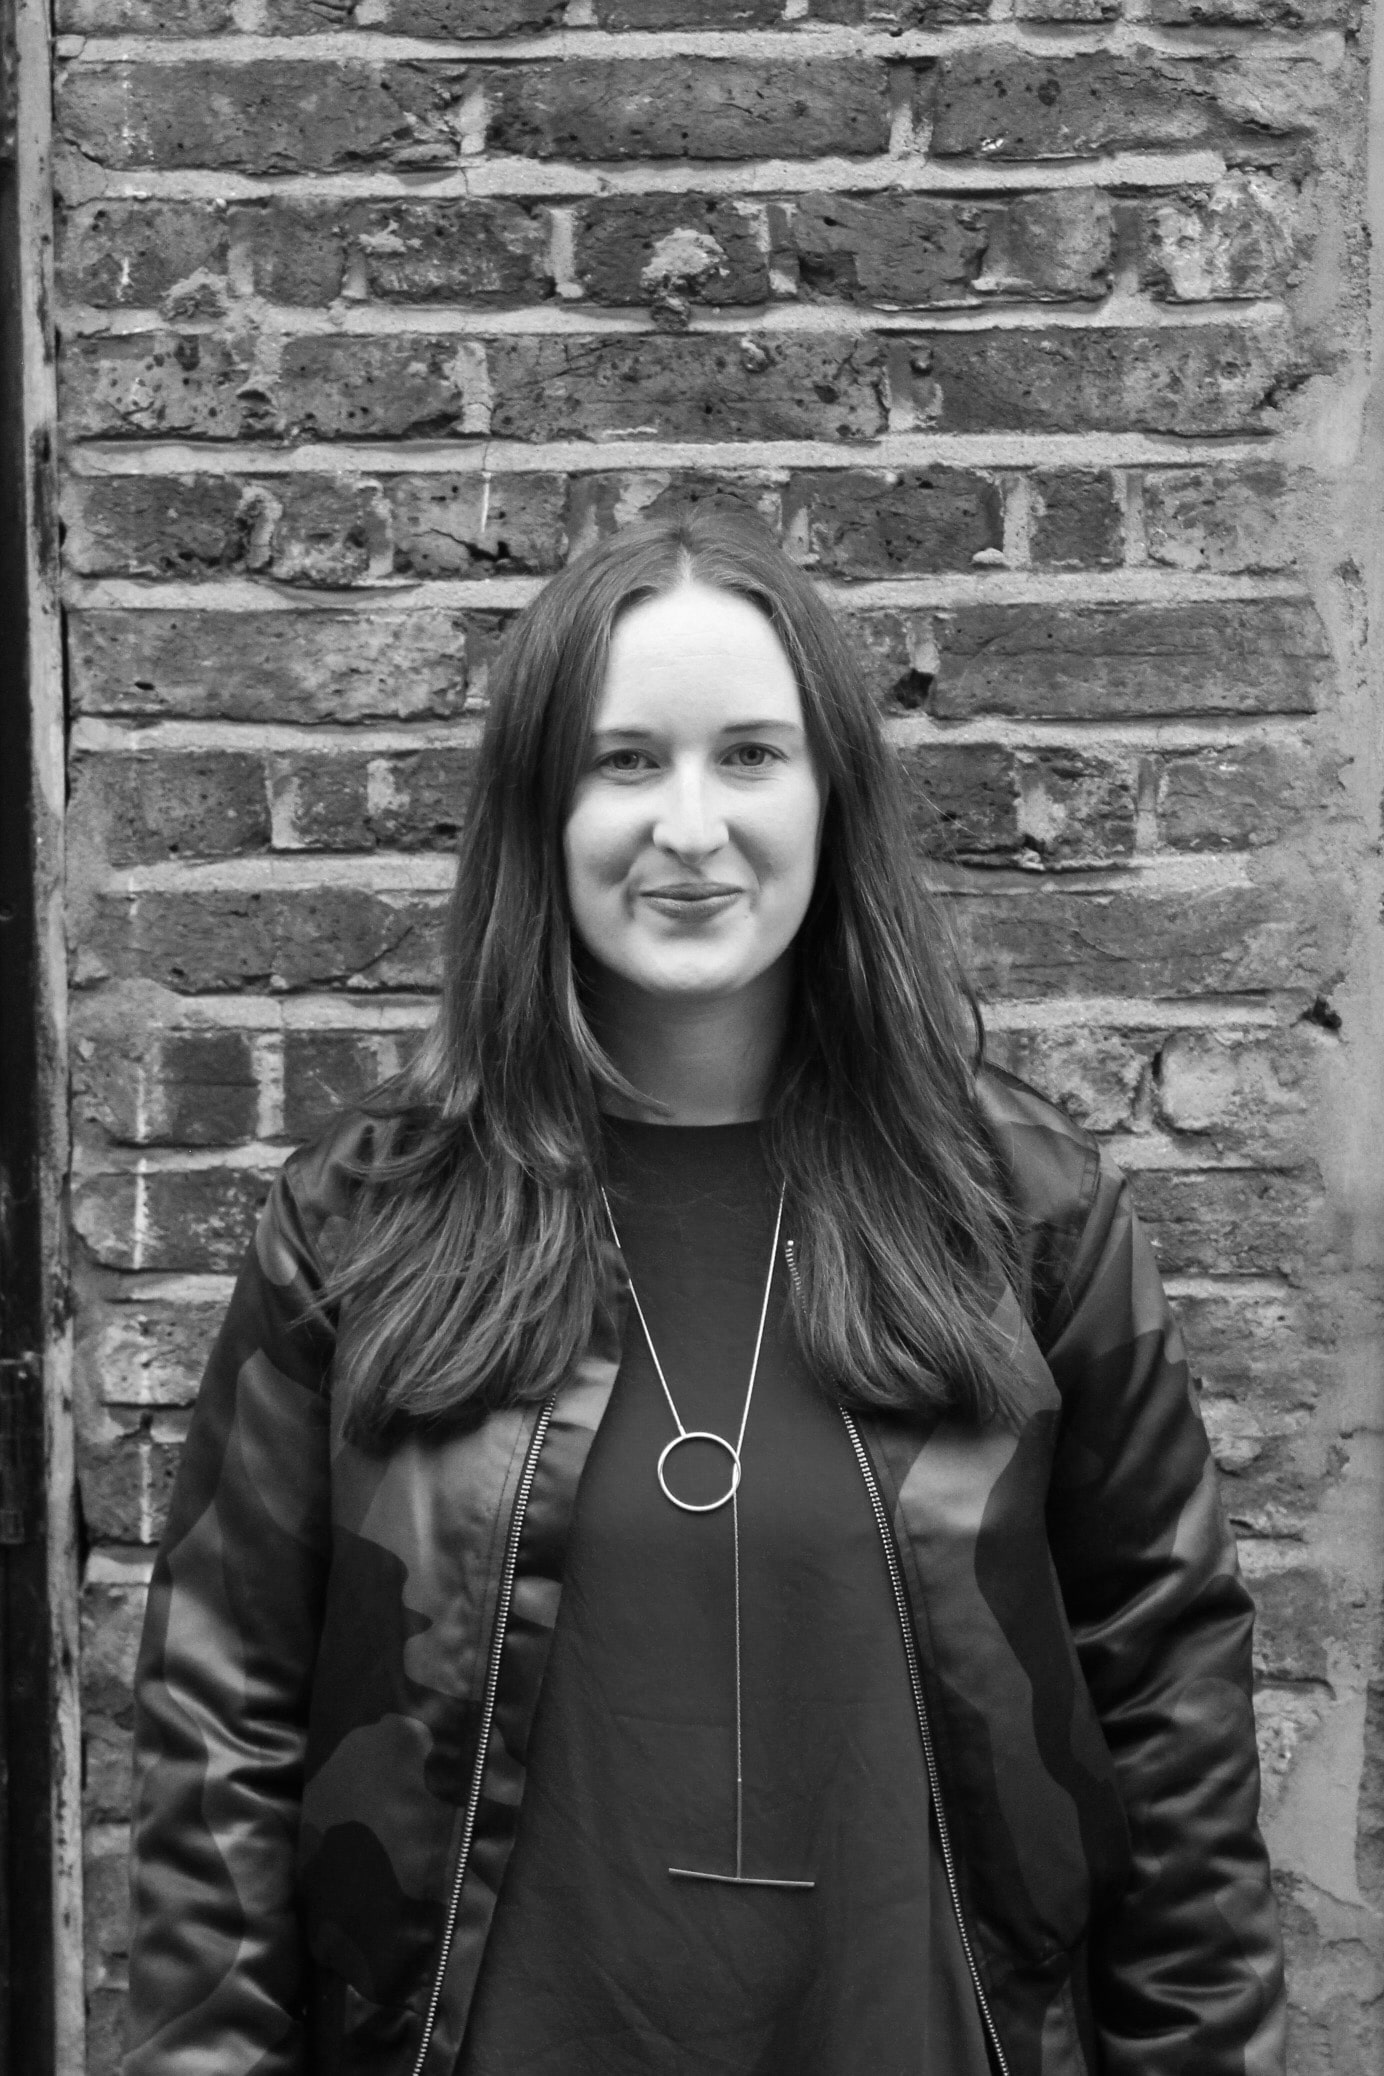 Courtney-Meettheteam-London-Graphic-Design-Studio-min.jpg